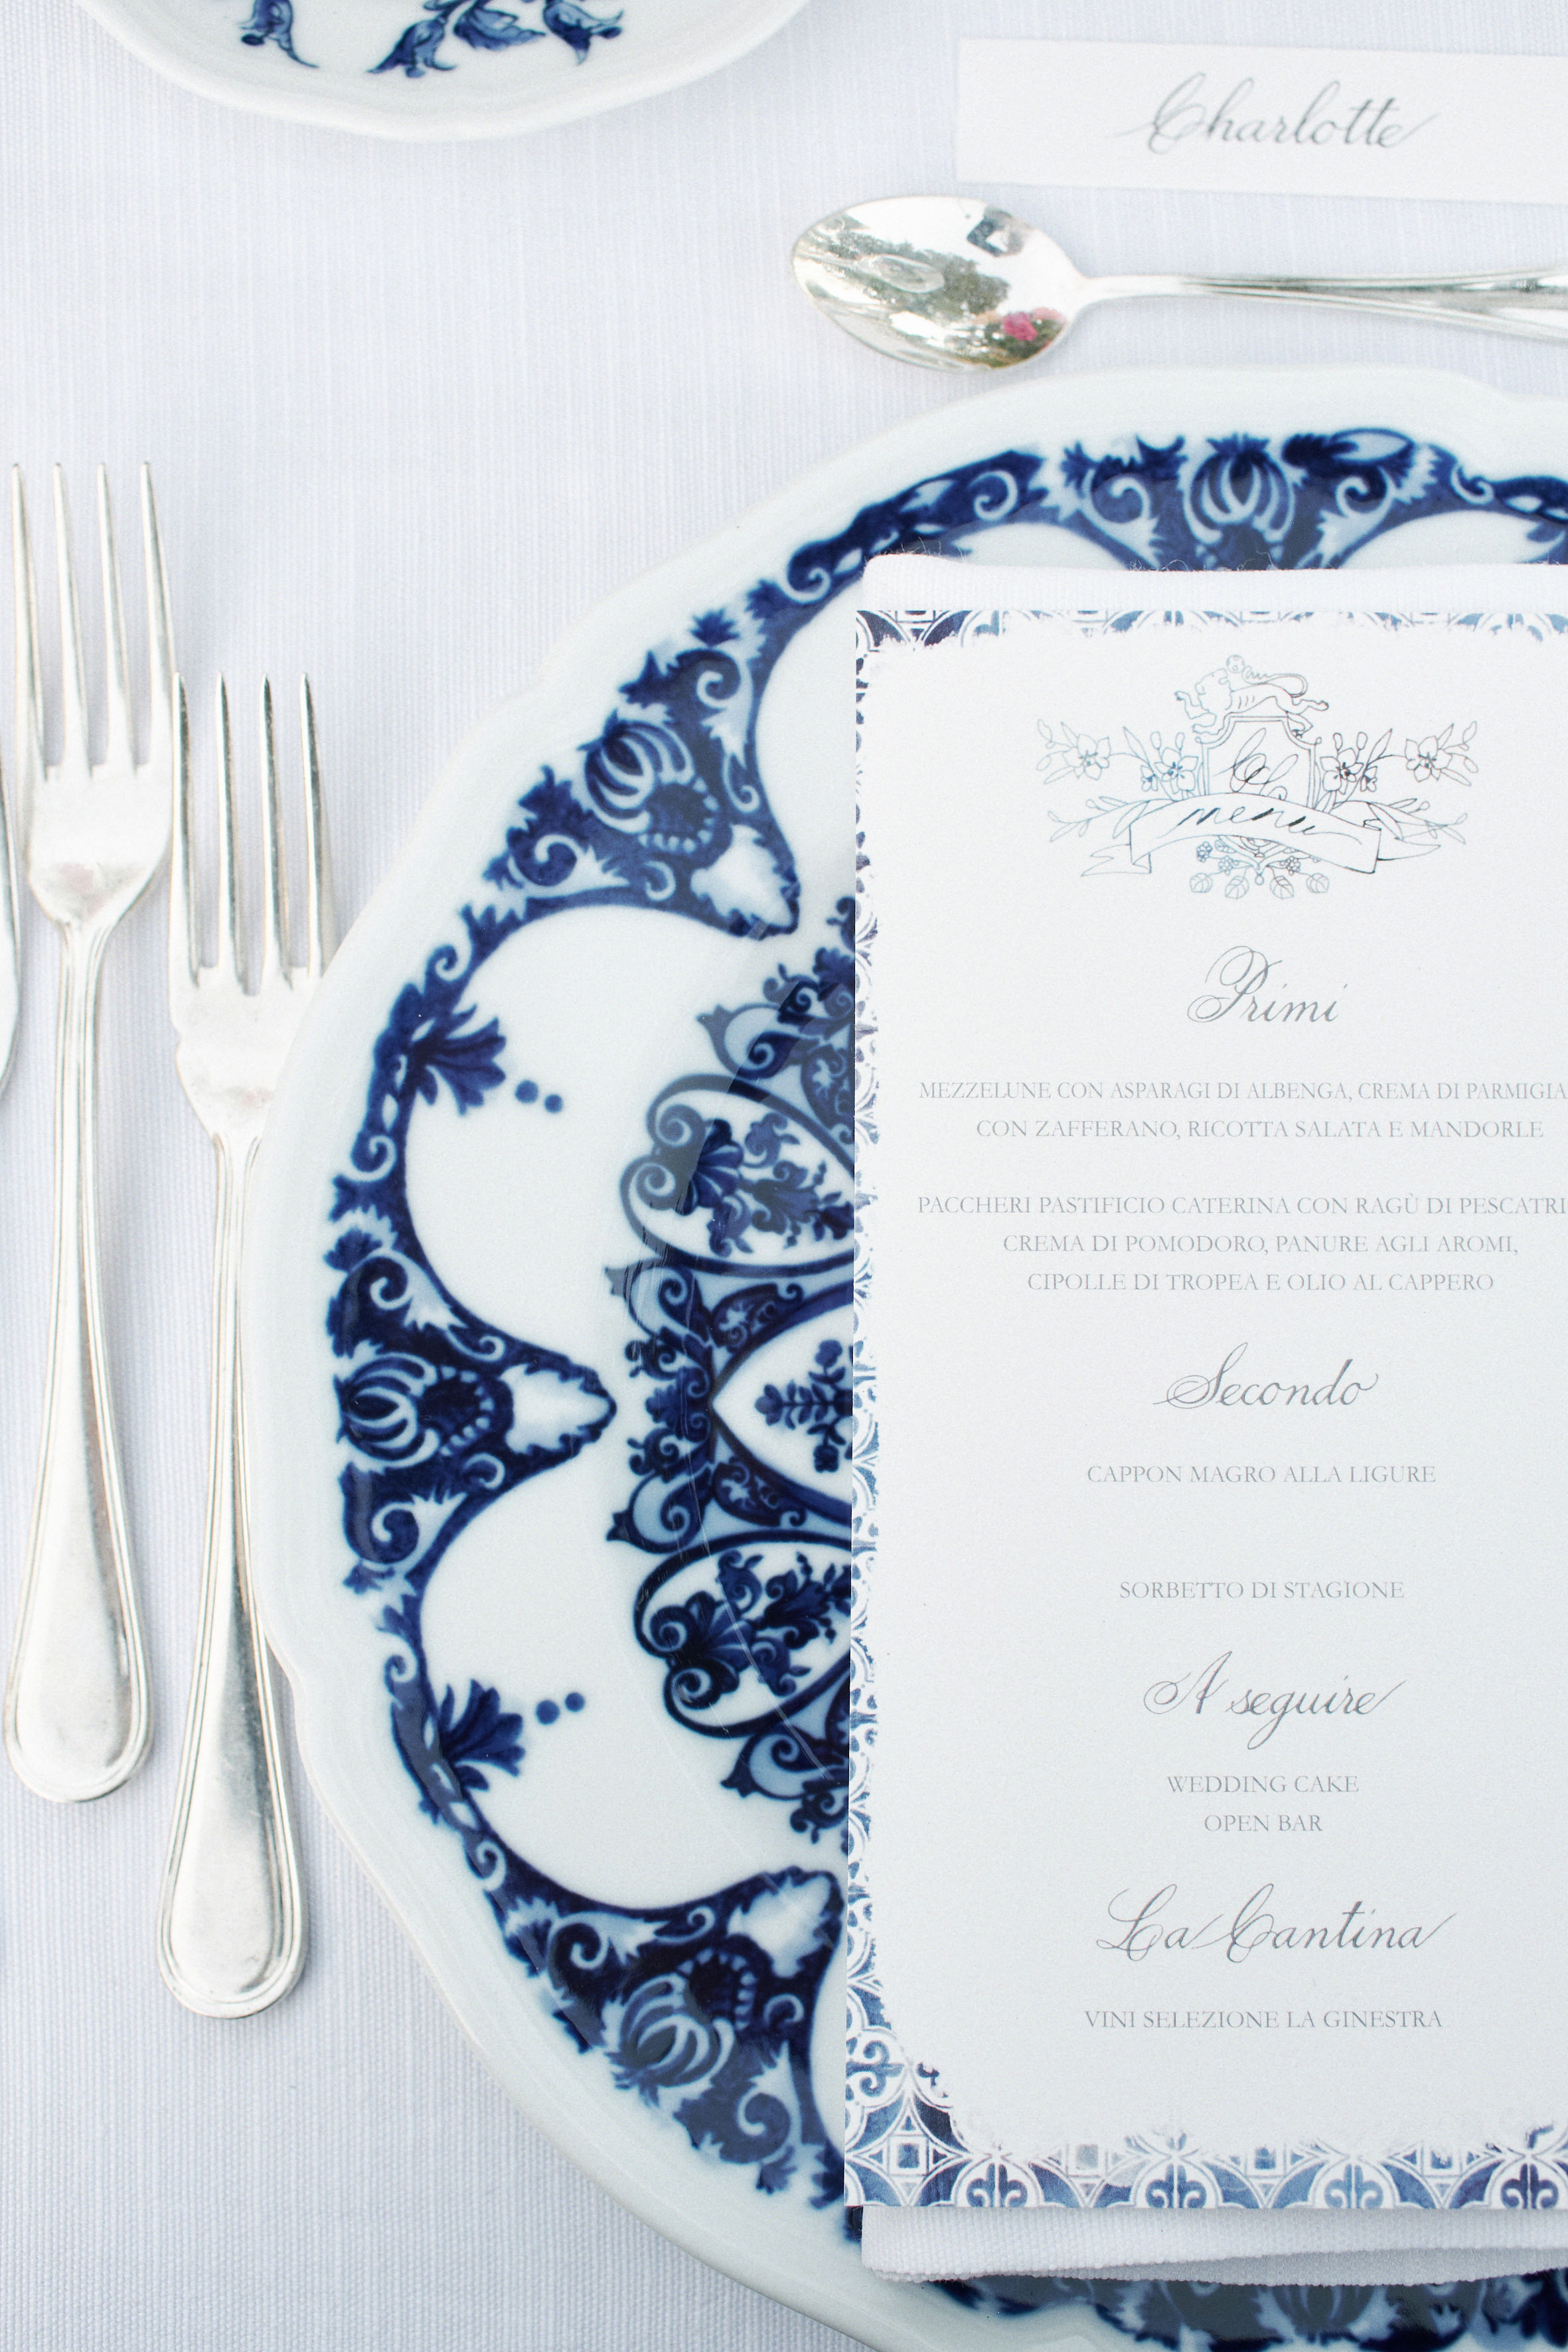 place-setting-with-silverware-menu-and-place-card-on-ornate-plate-andrea-bagnasco-fotografie